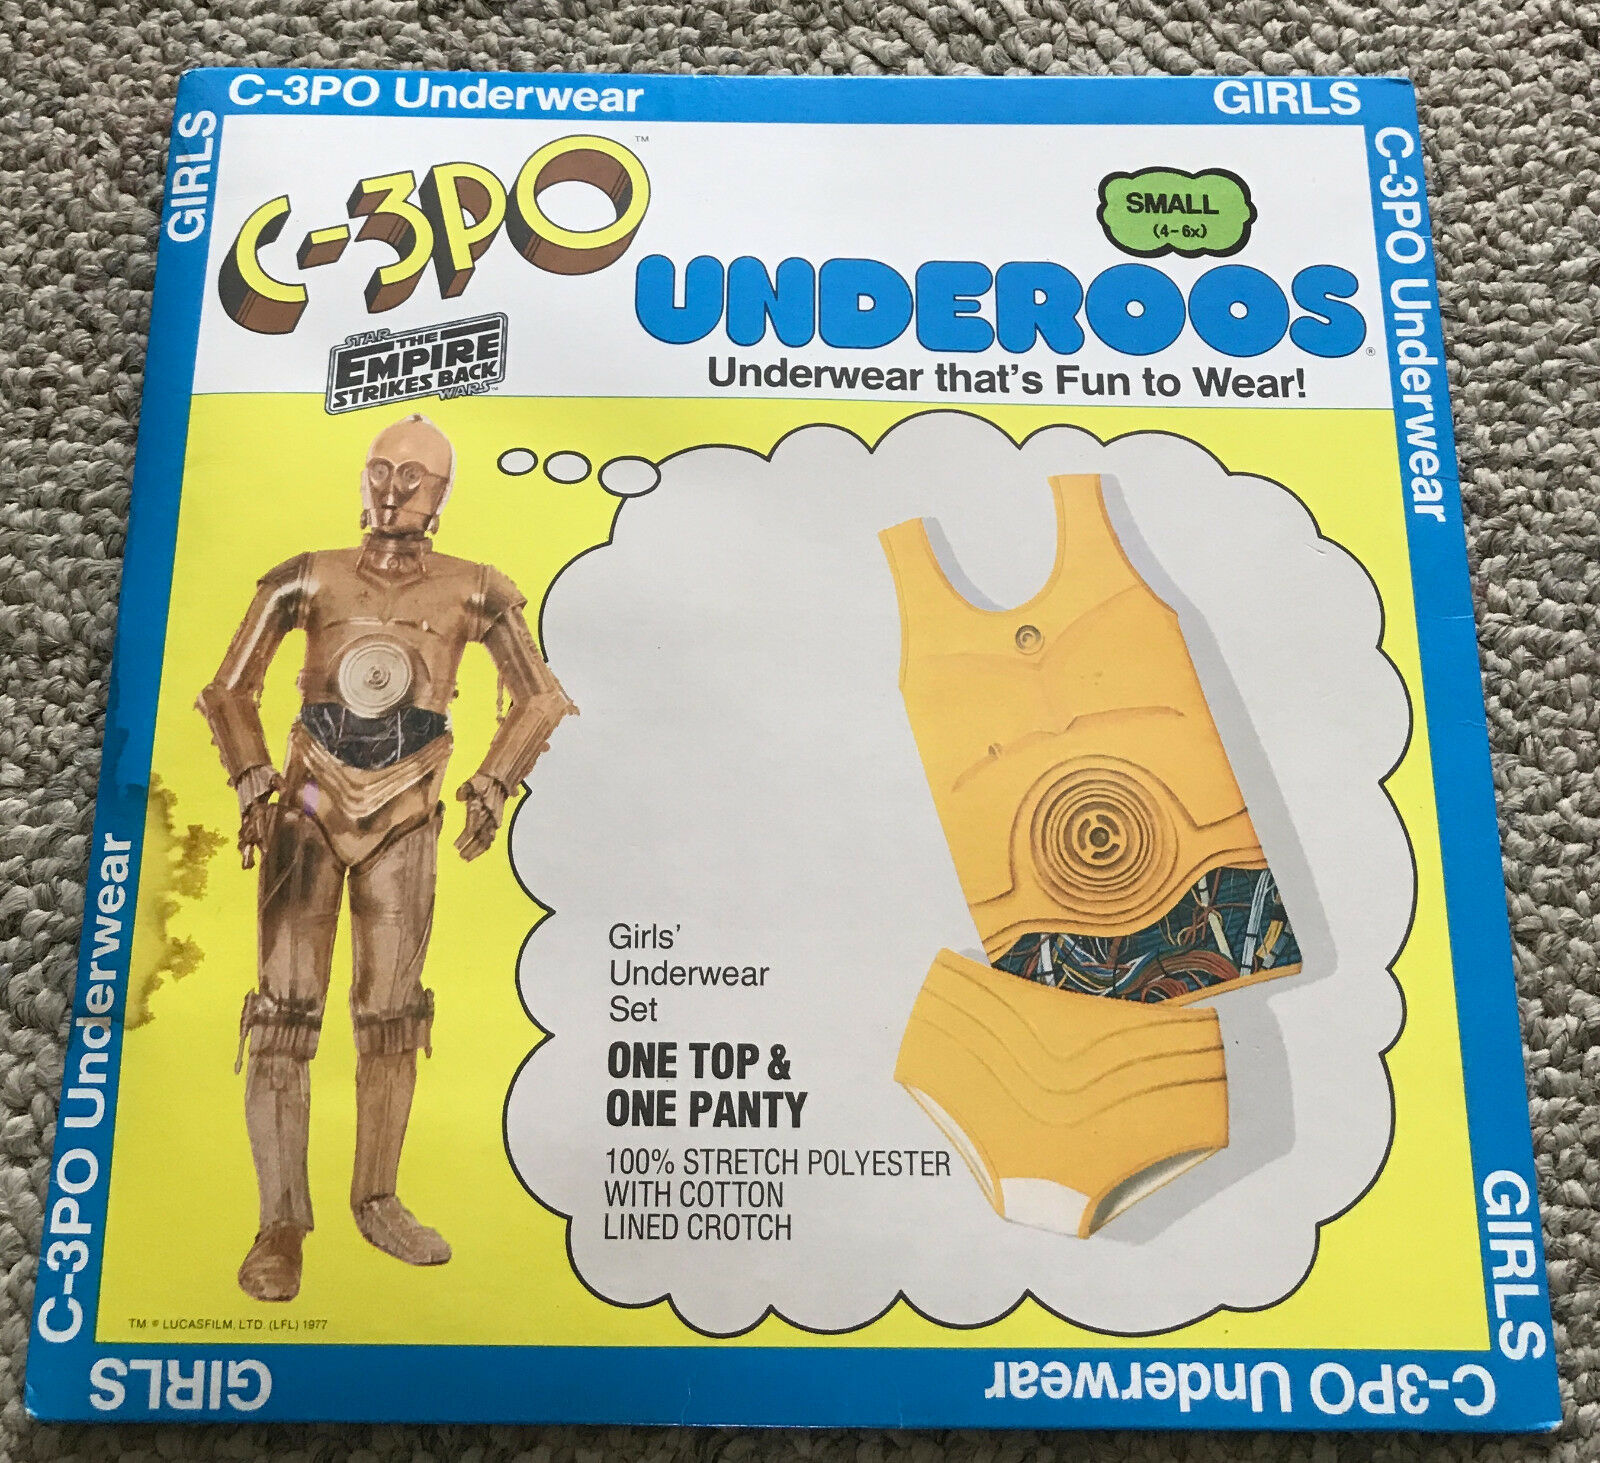 5 Awesome Things on Ebay- C3PO Underoos